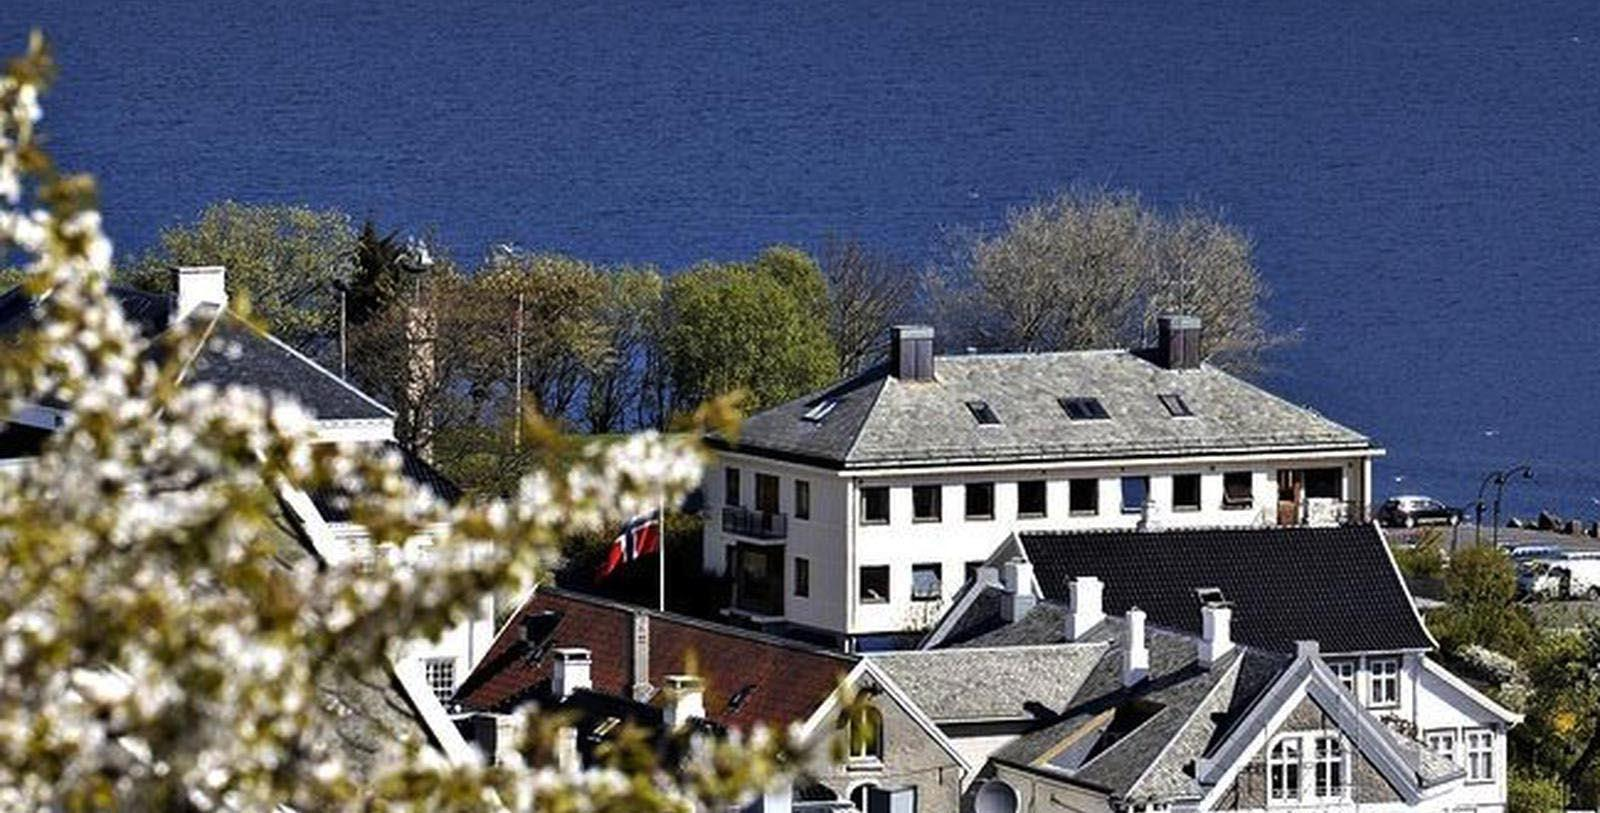 Image of Aerial View of Hotel Rederiet Hotell, 1958, Member of Historic Hotels Worldwide, in Farsund, Norway, Overview